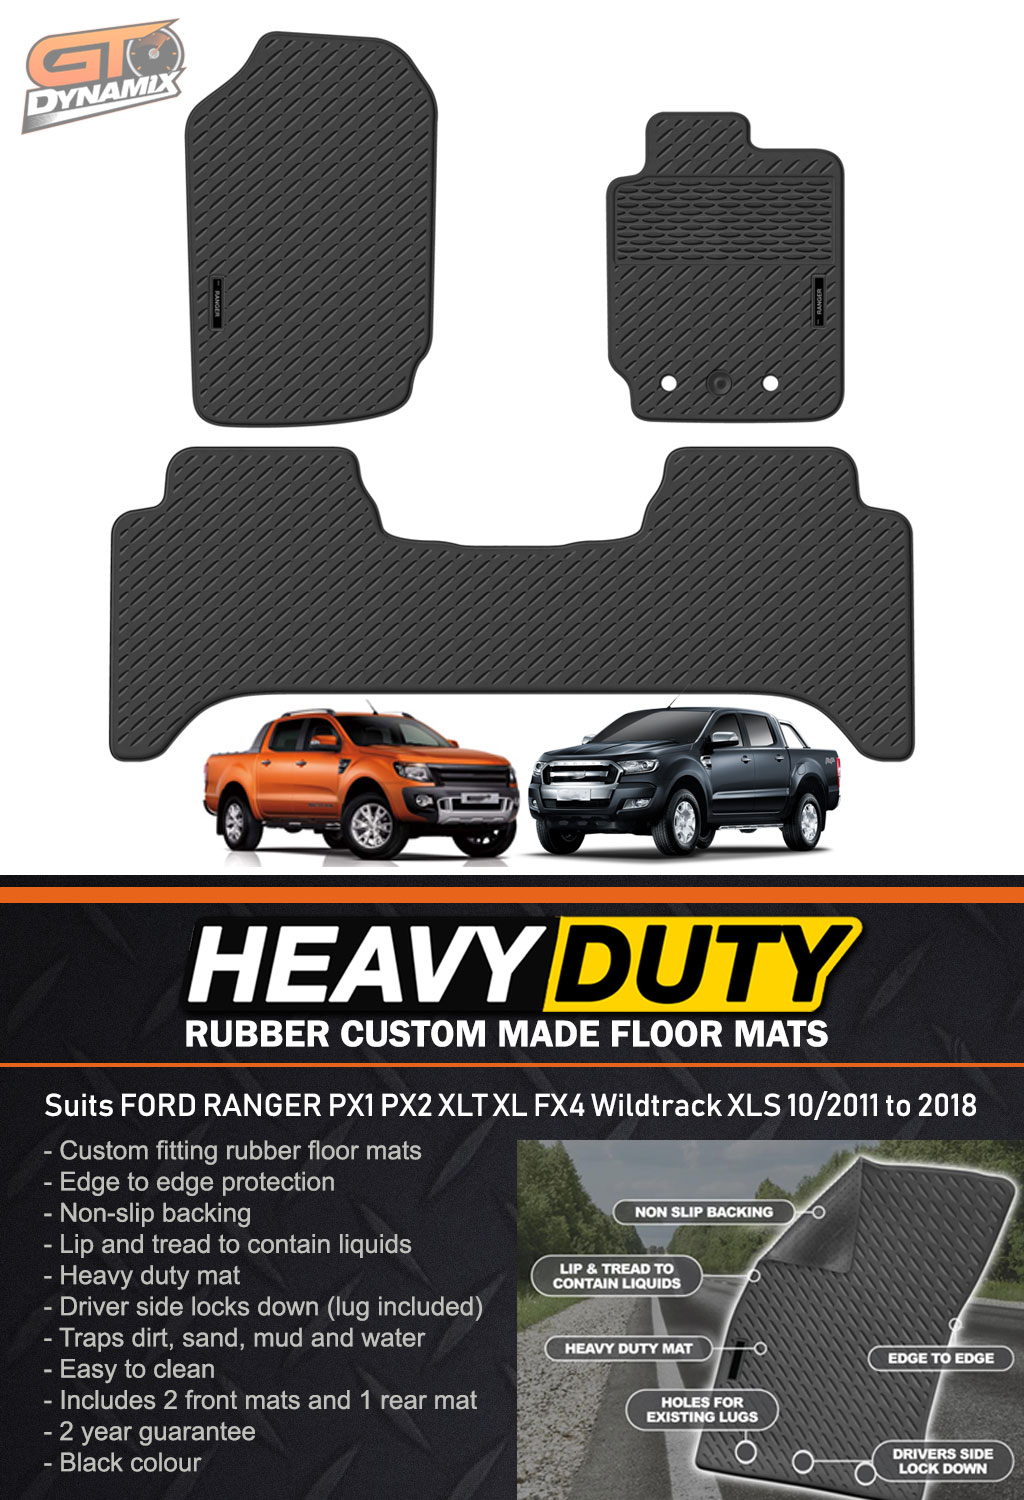 Custom Hd Rubber Floor Mats Ford Ranger Px1 Px2 Px3 Mk3